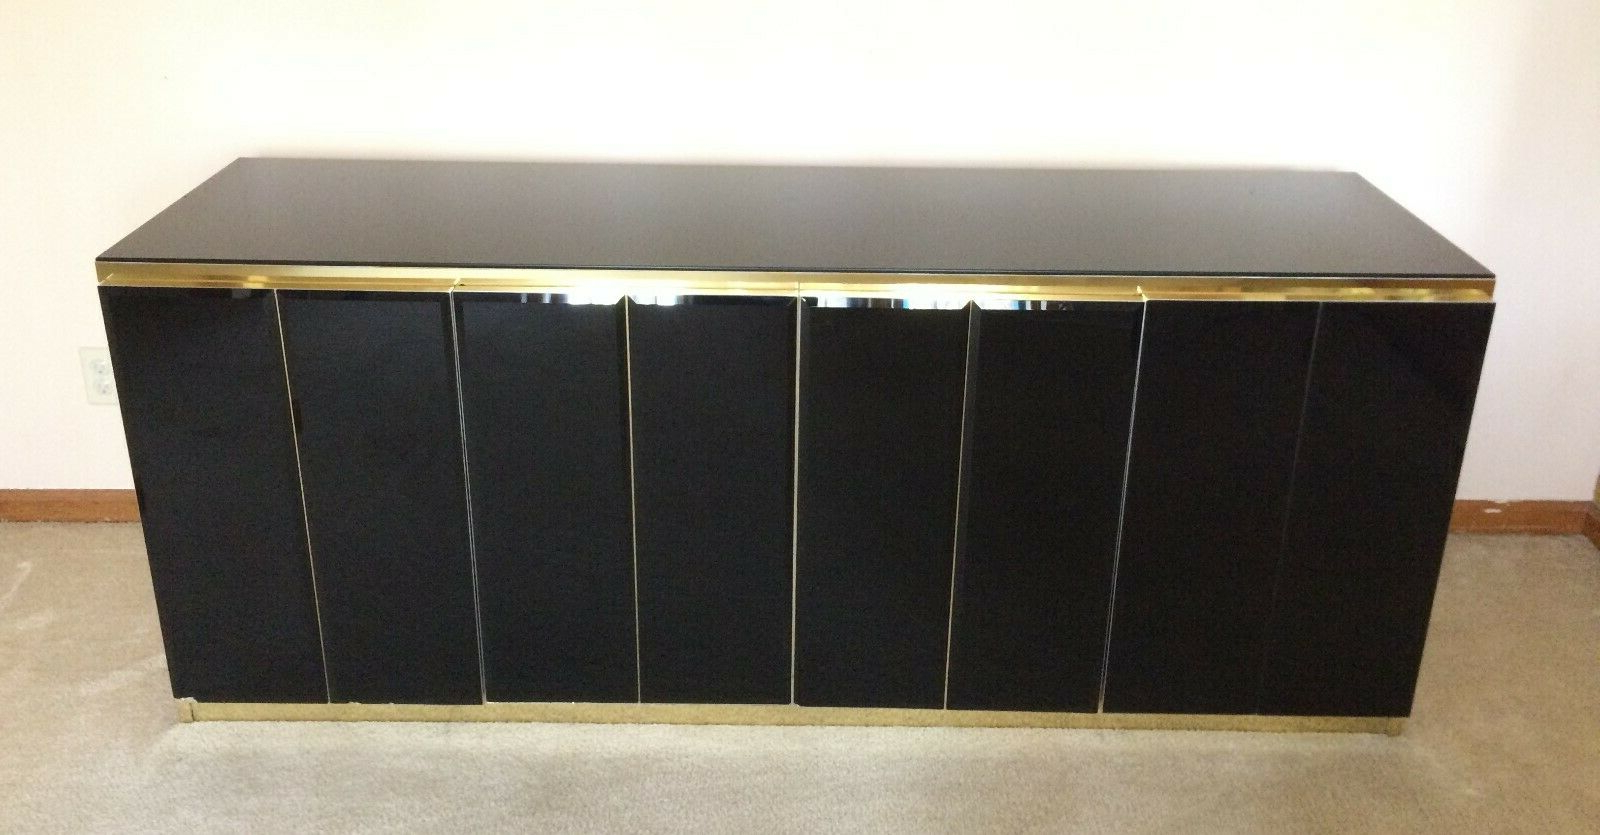 Ello: Credenza * Early Black Glass & Brass Design * 4 Door * Very Good Condition With Kieth 4 Door Credenzas (View 13 of 20)